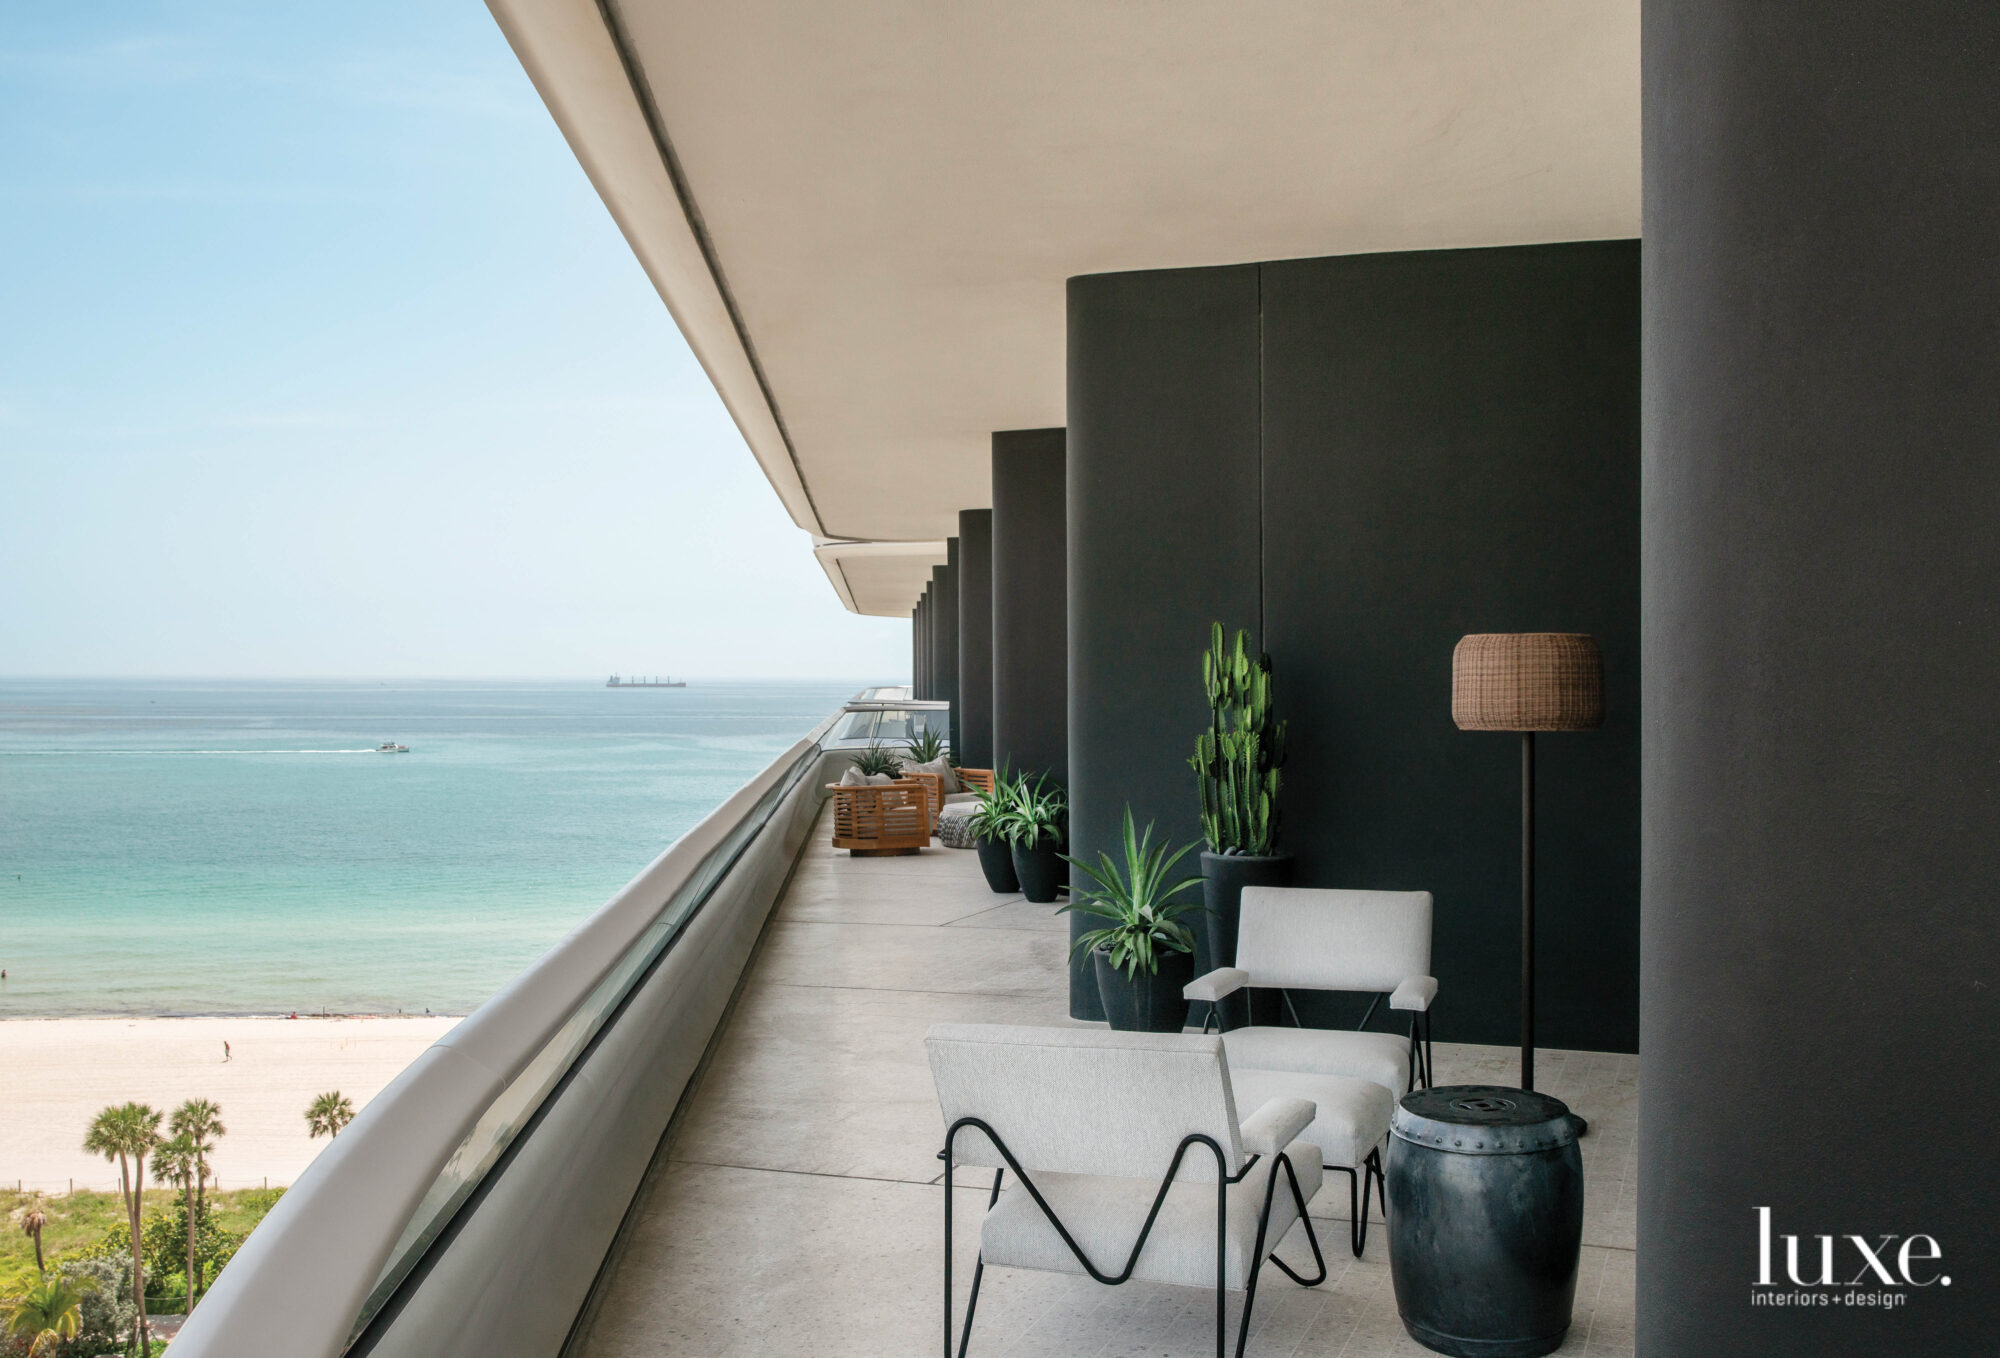 Terrace with gray armchairs, plants and beach views